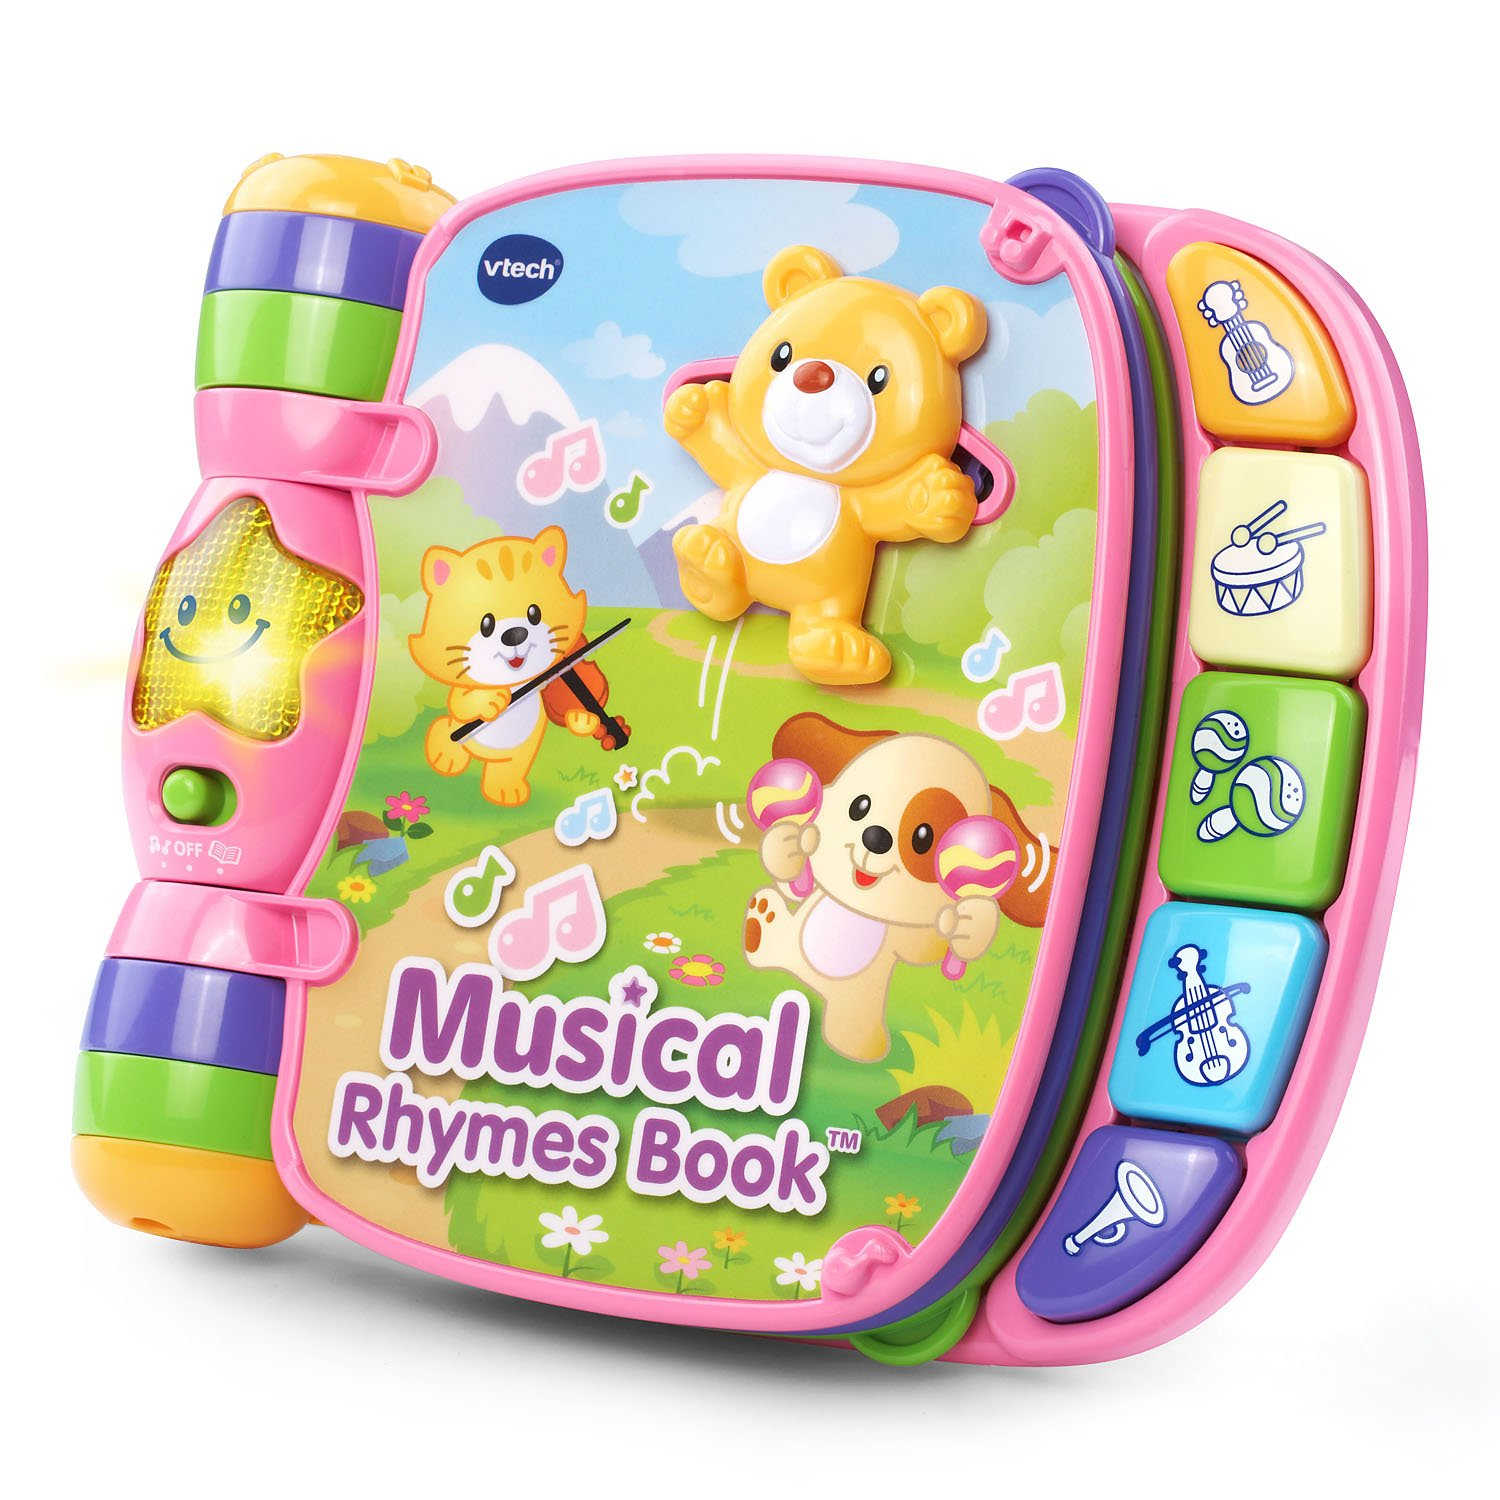 VTech Musical Rhymes Book Amazon Exclusive, Pink